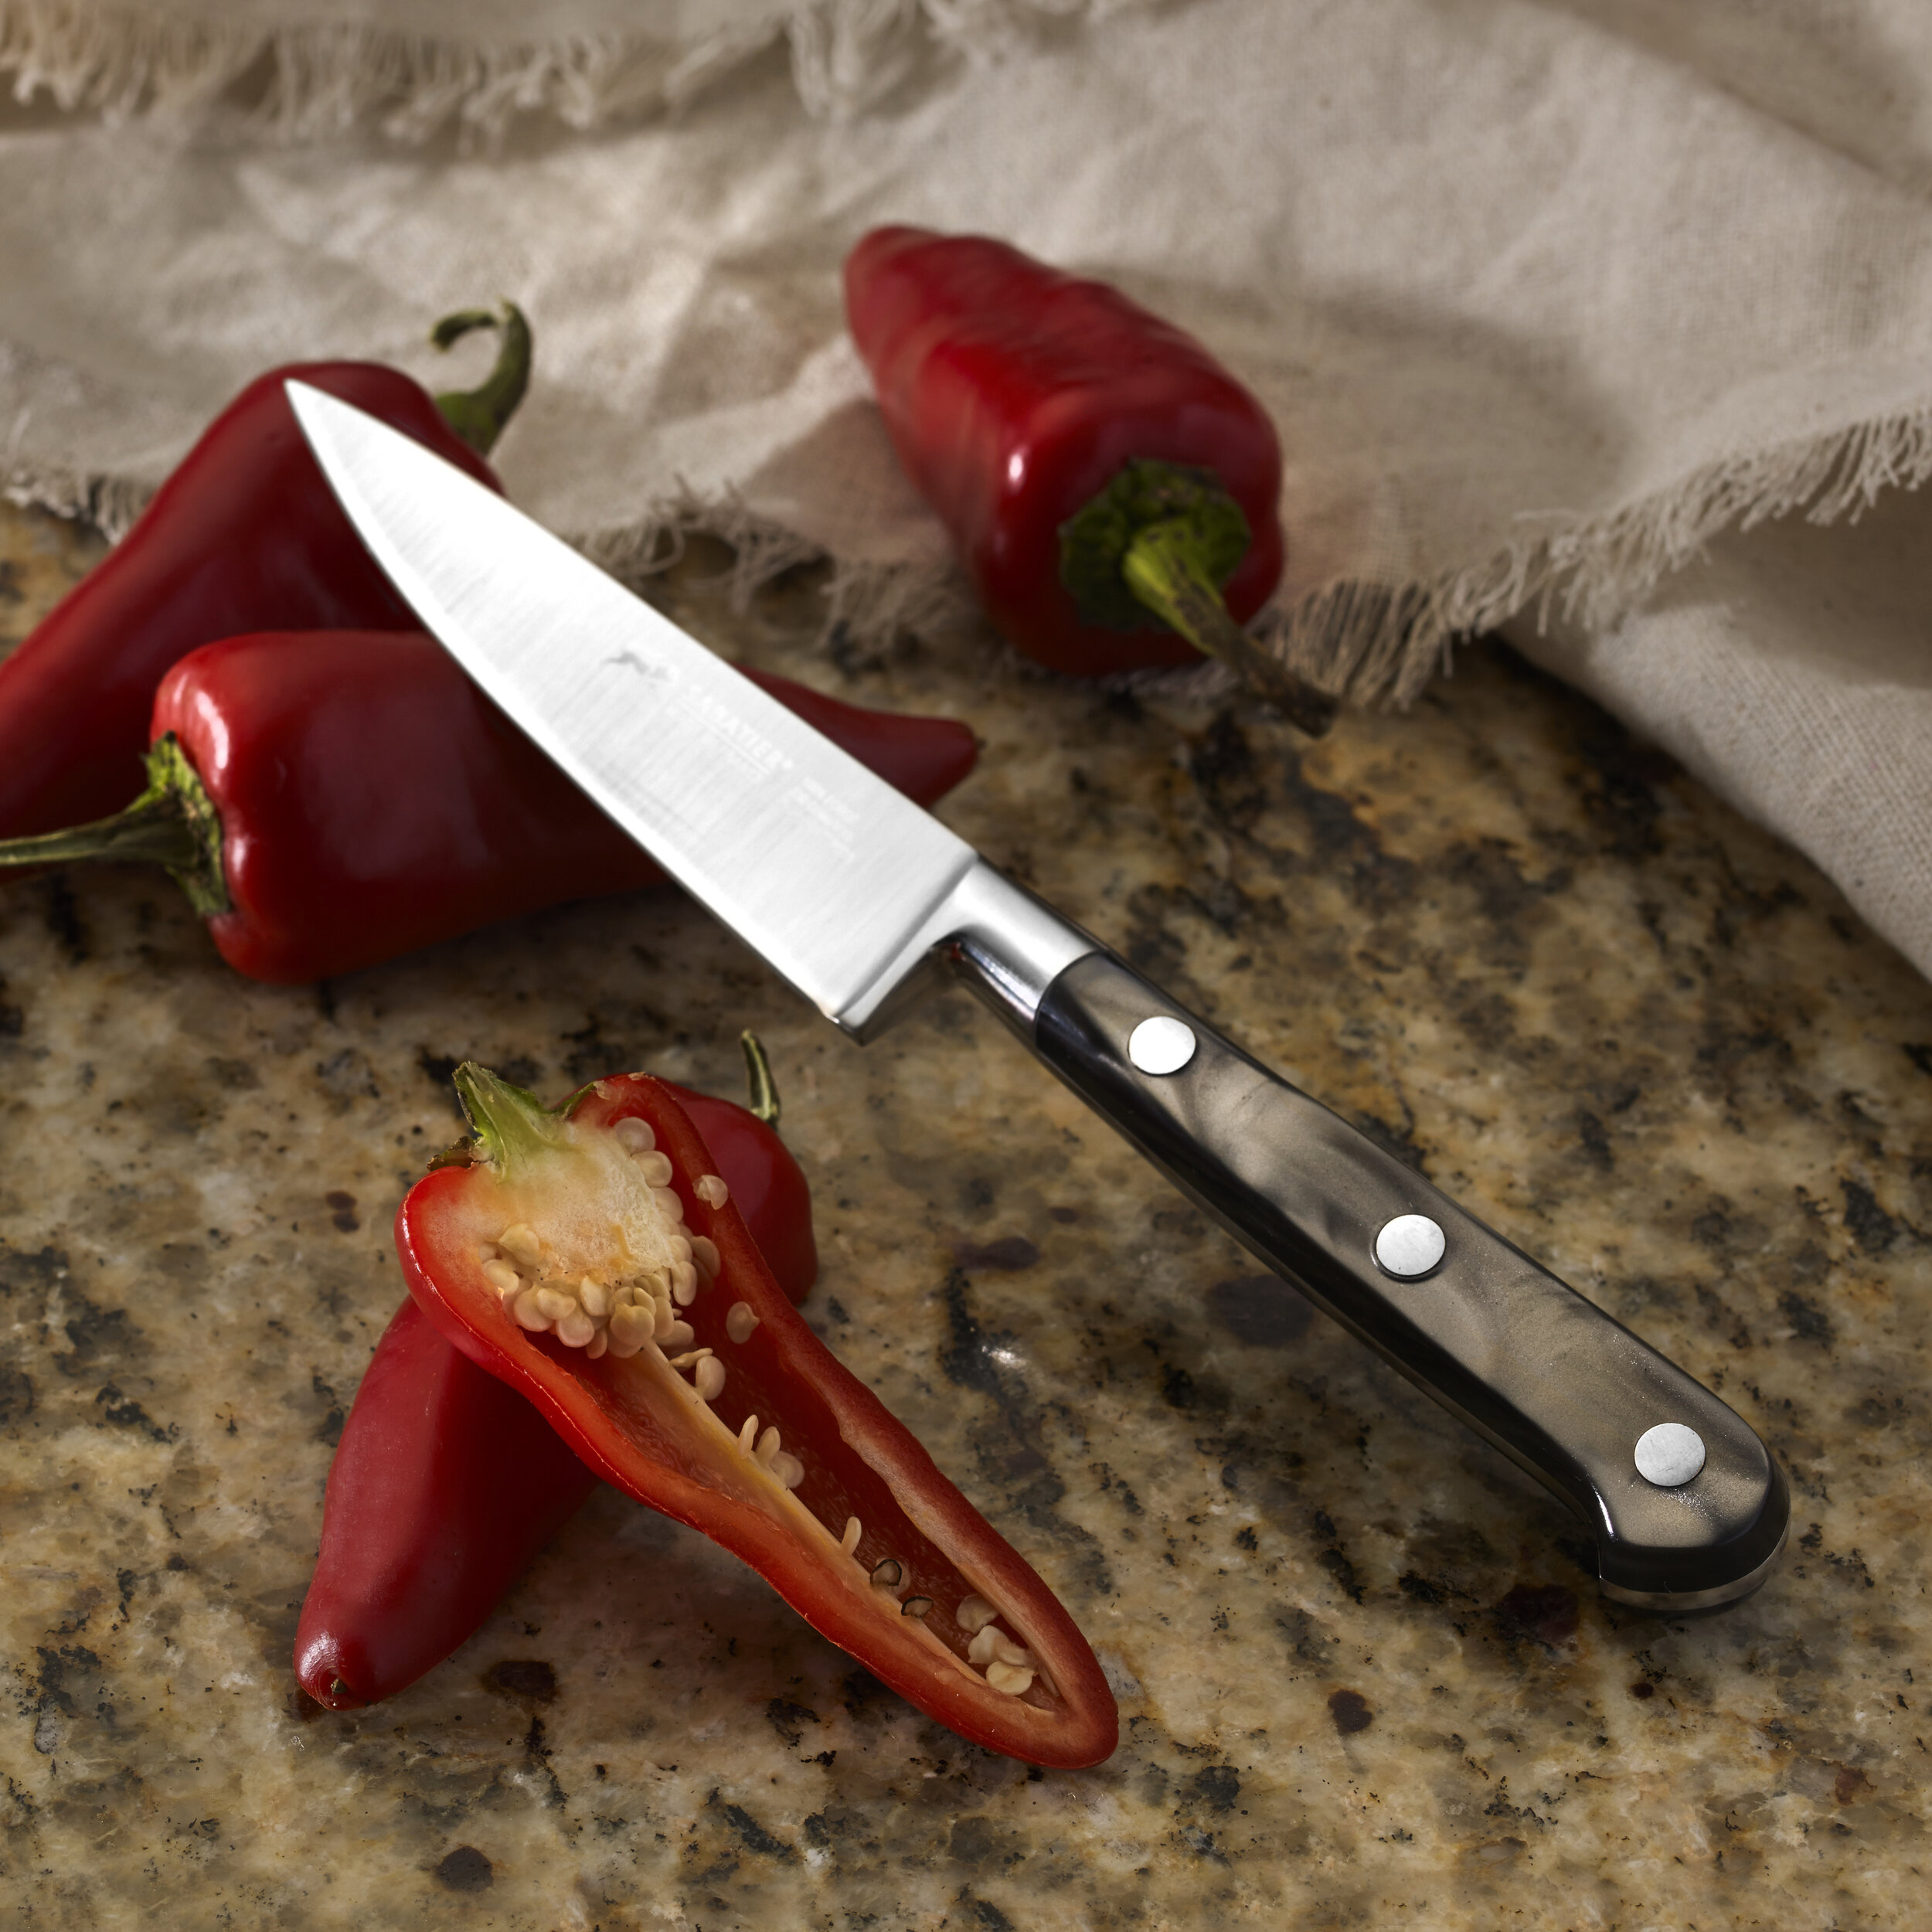 Sabatier 4 Stainless Steel Paring Knife Part Number 5137487